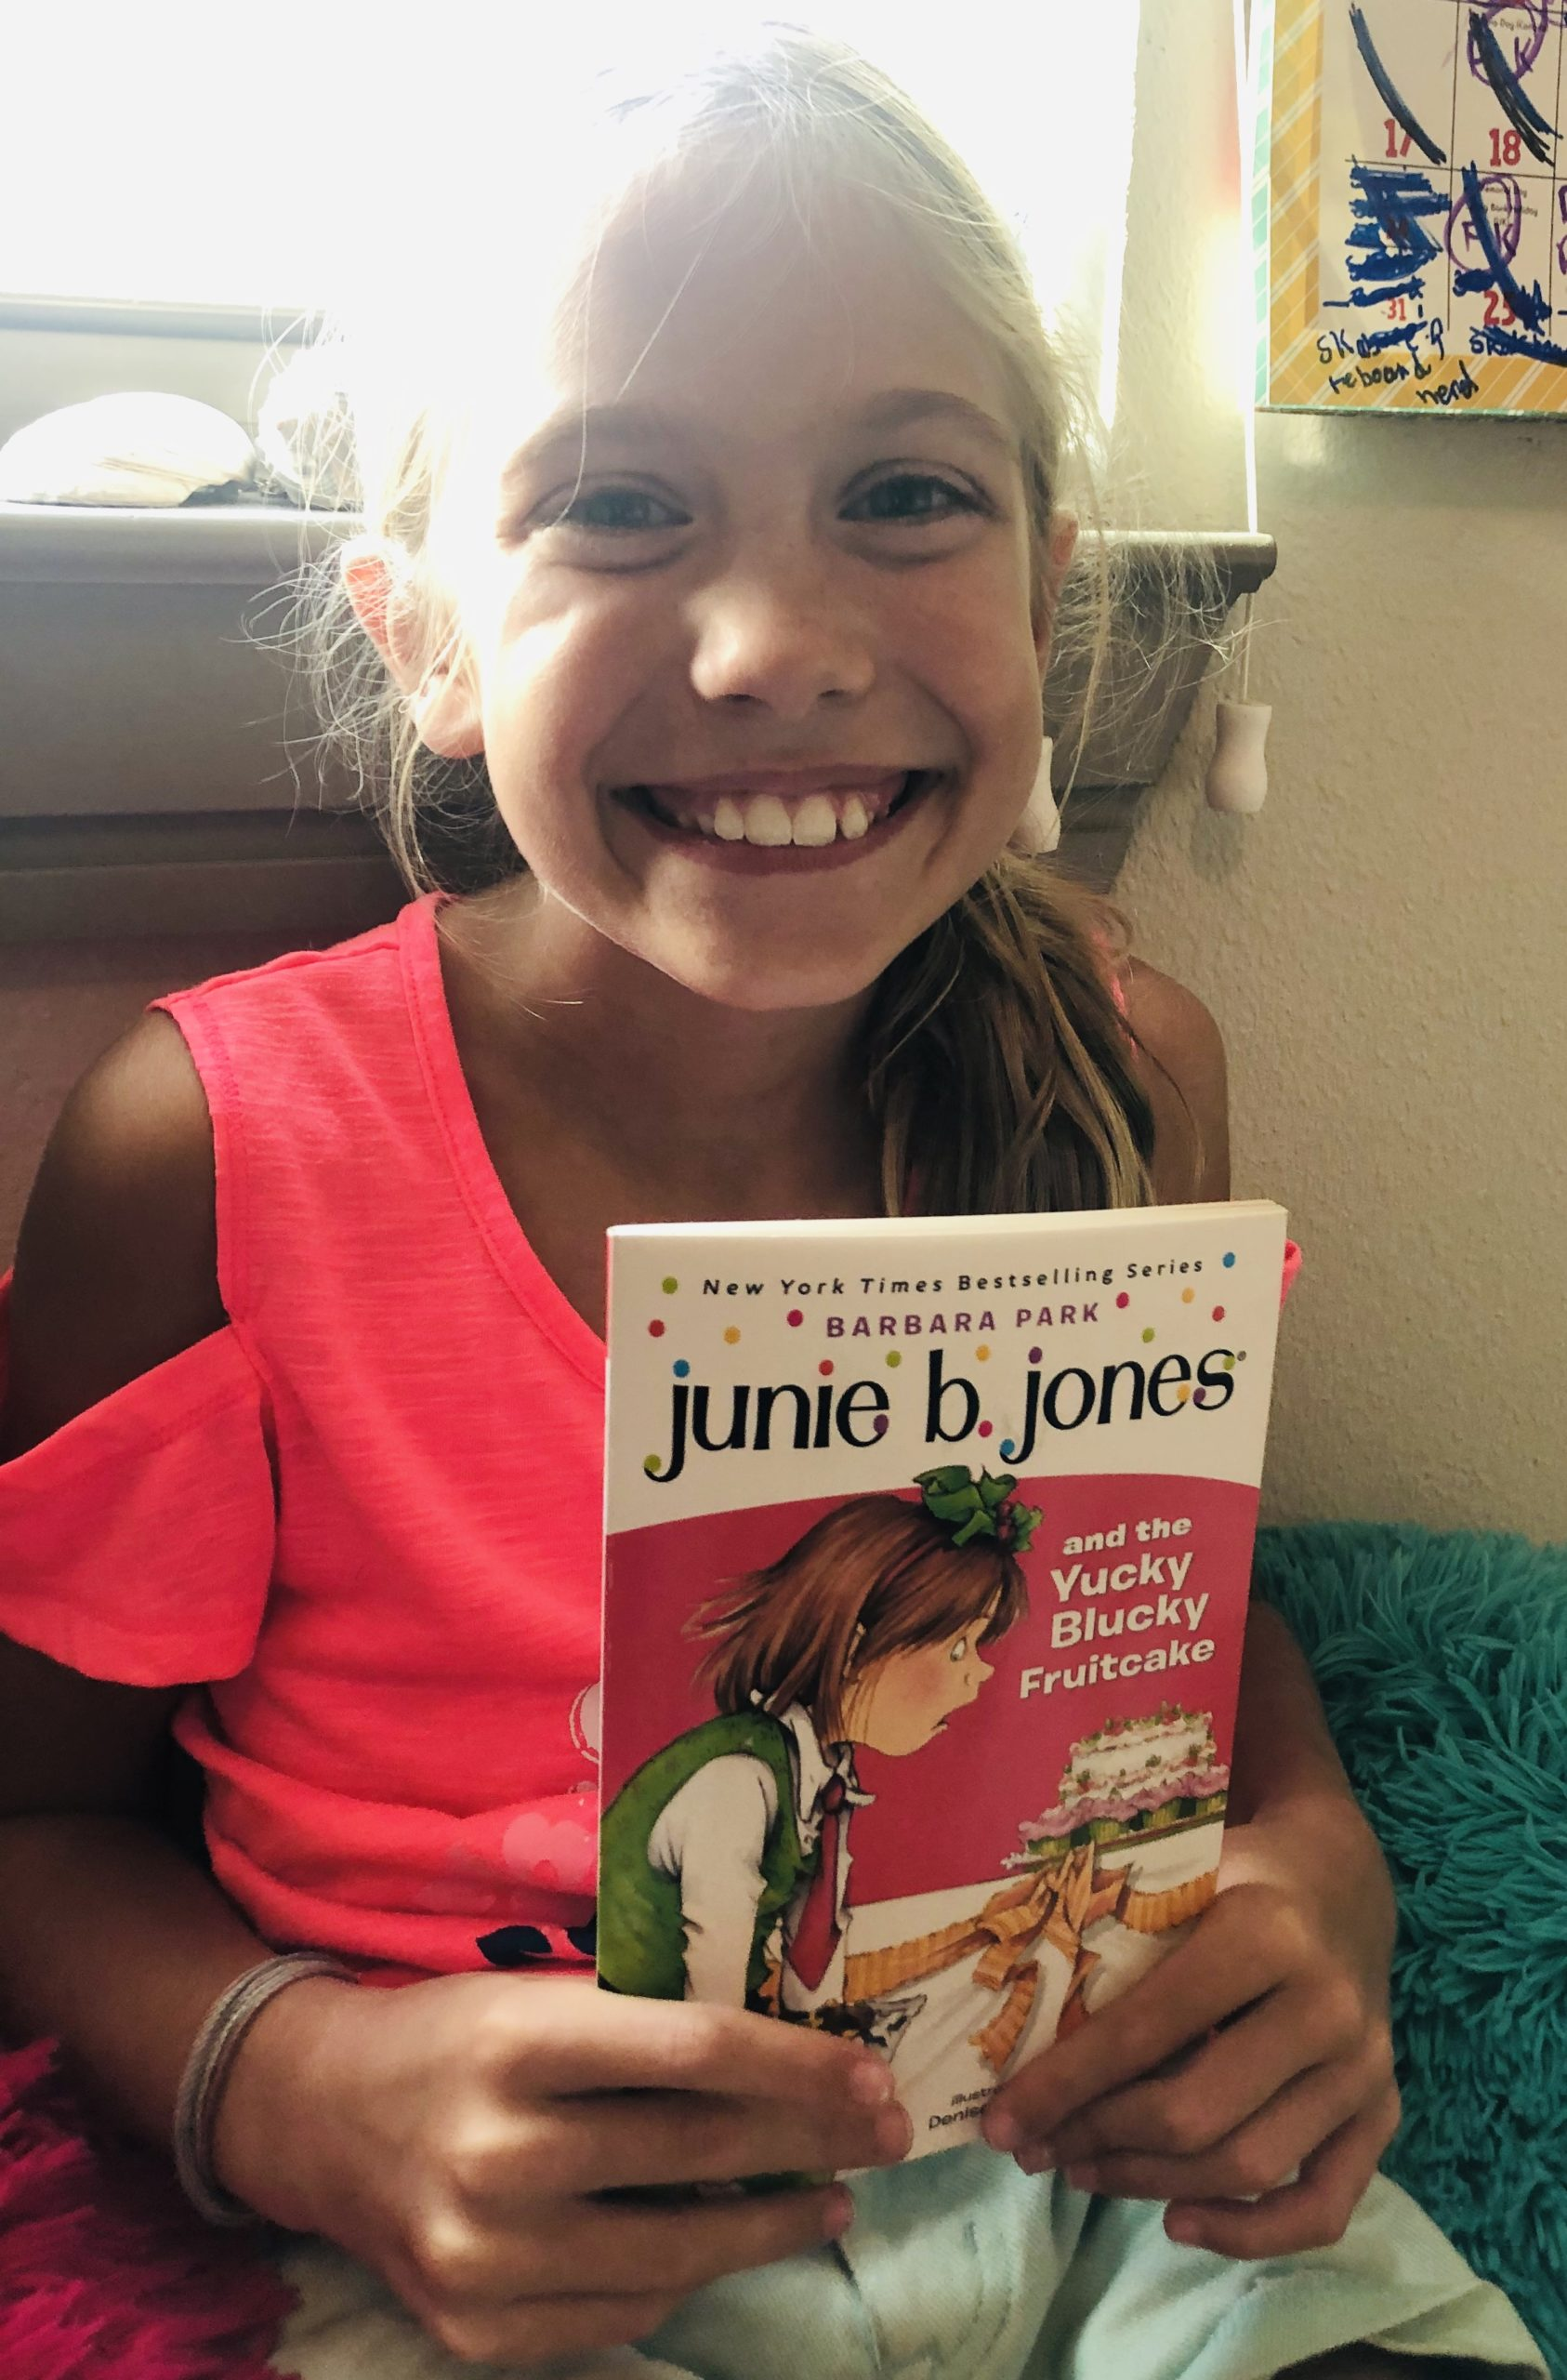 Blonde haired girl smiling at camera holding the book, Junie B. Jones and the Yucky Blucky Fruitcake for the children's book review by K and B Life.